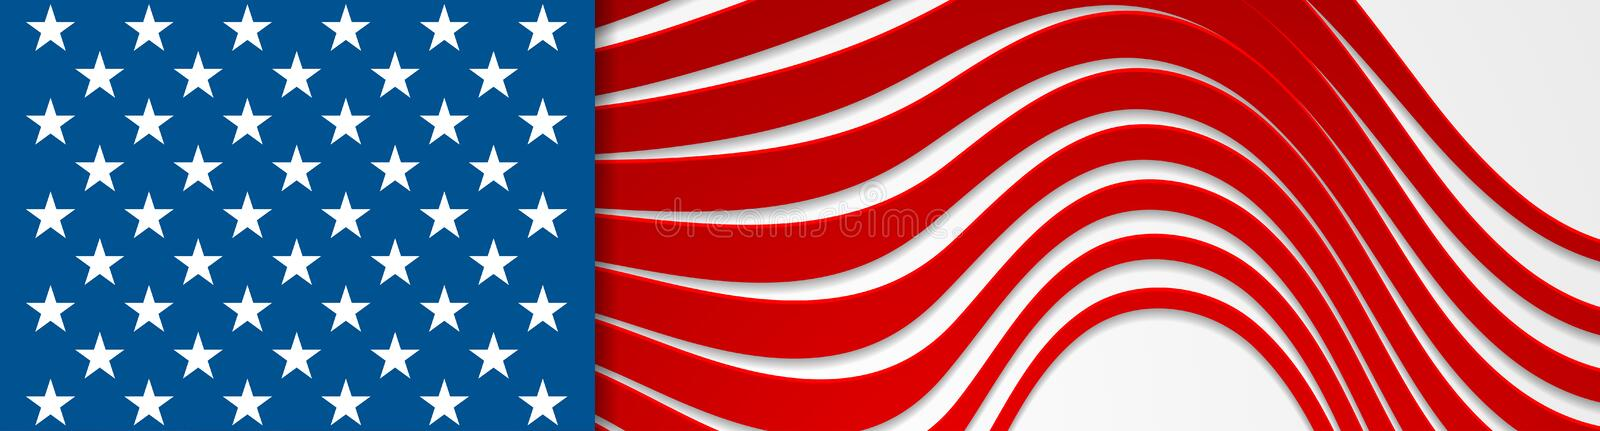 USA colors and stars abstract bright wavy banner design vector illustration